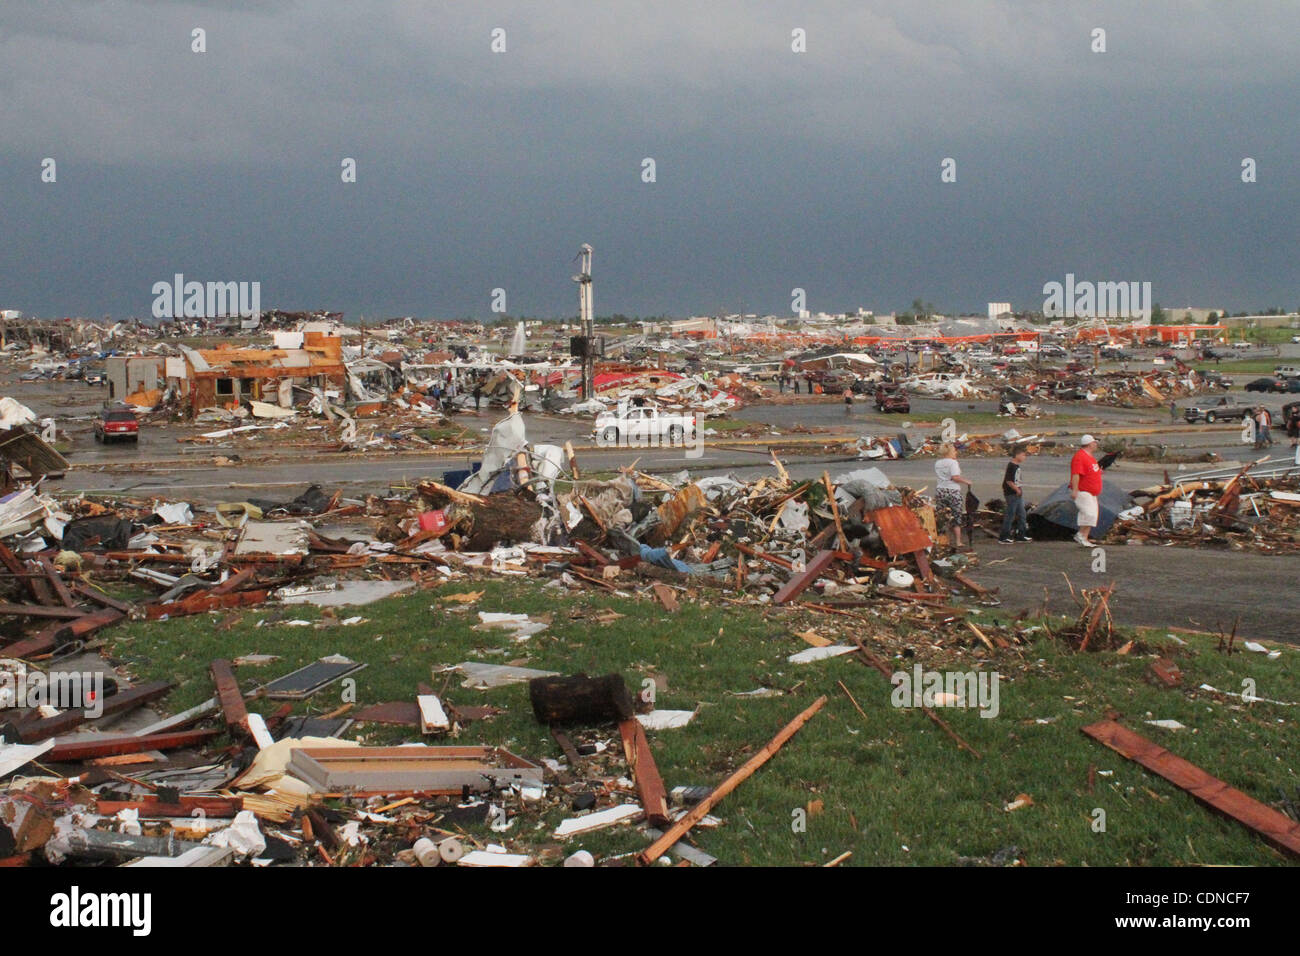 Page 2 May 22 2011 Joplin Missouri High Resolution Stock Photography And Images Alamy